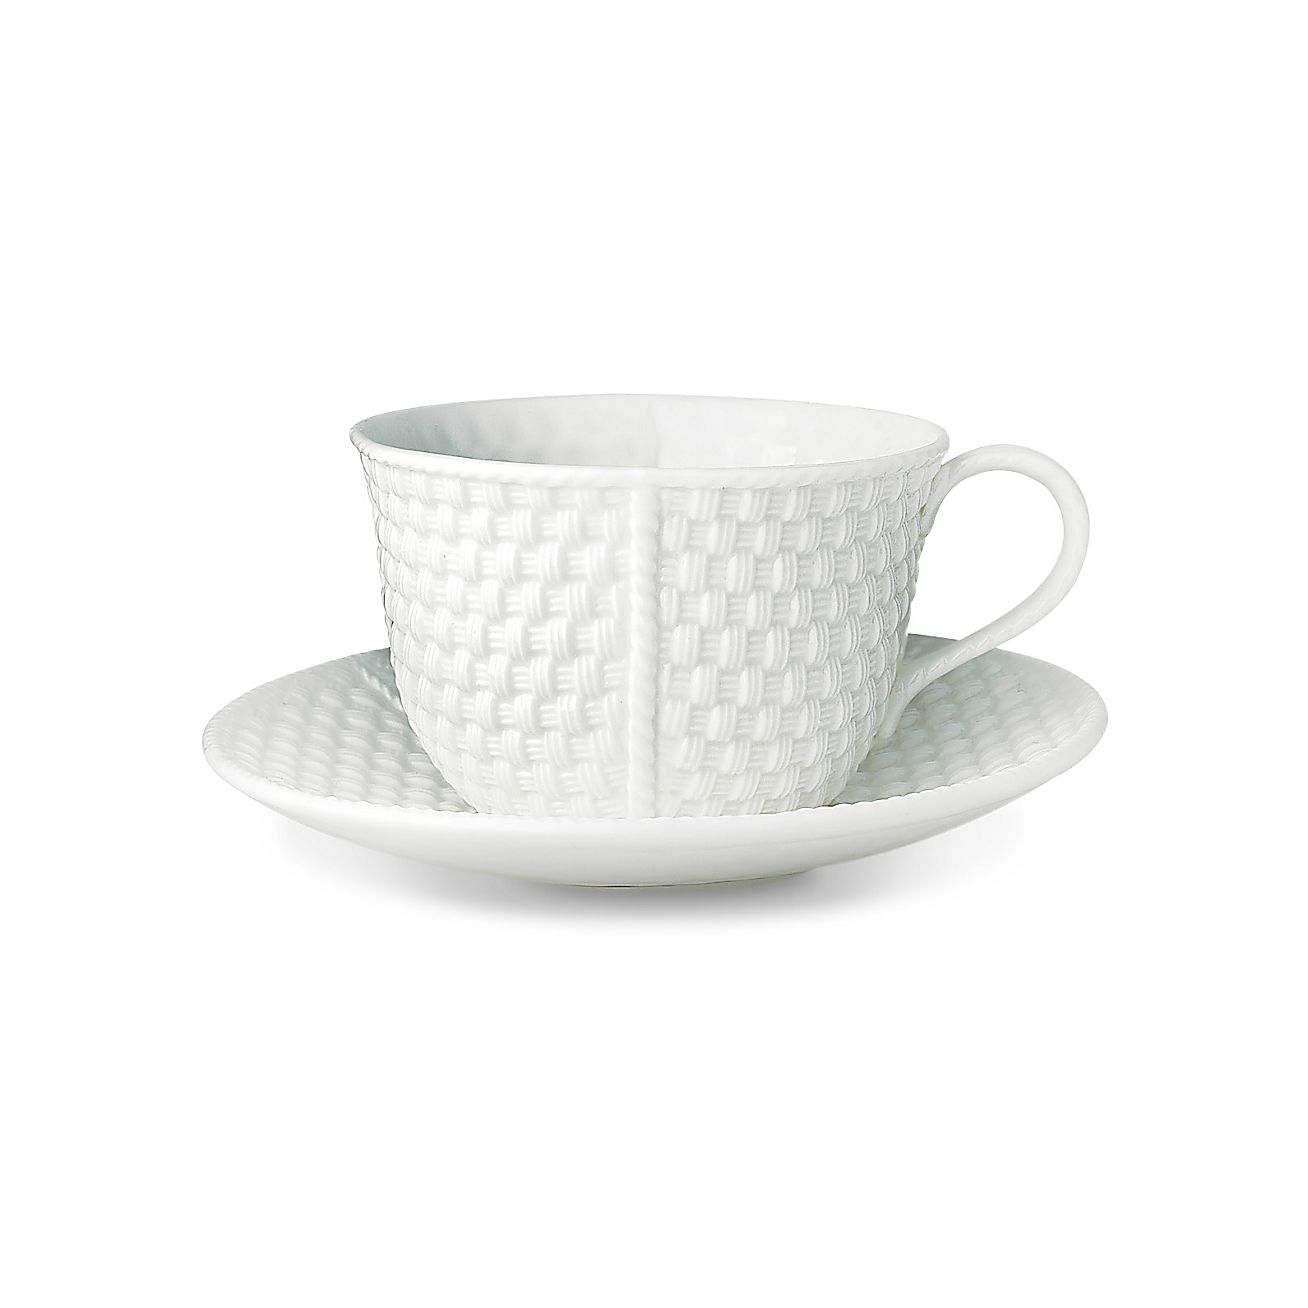 Tiffany Weave:Breakfast Cup and Saucer